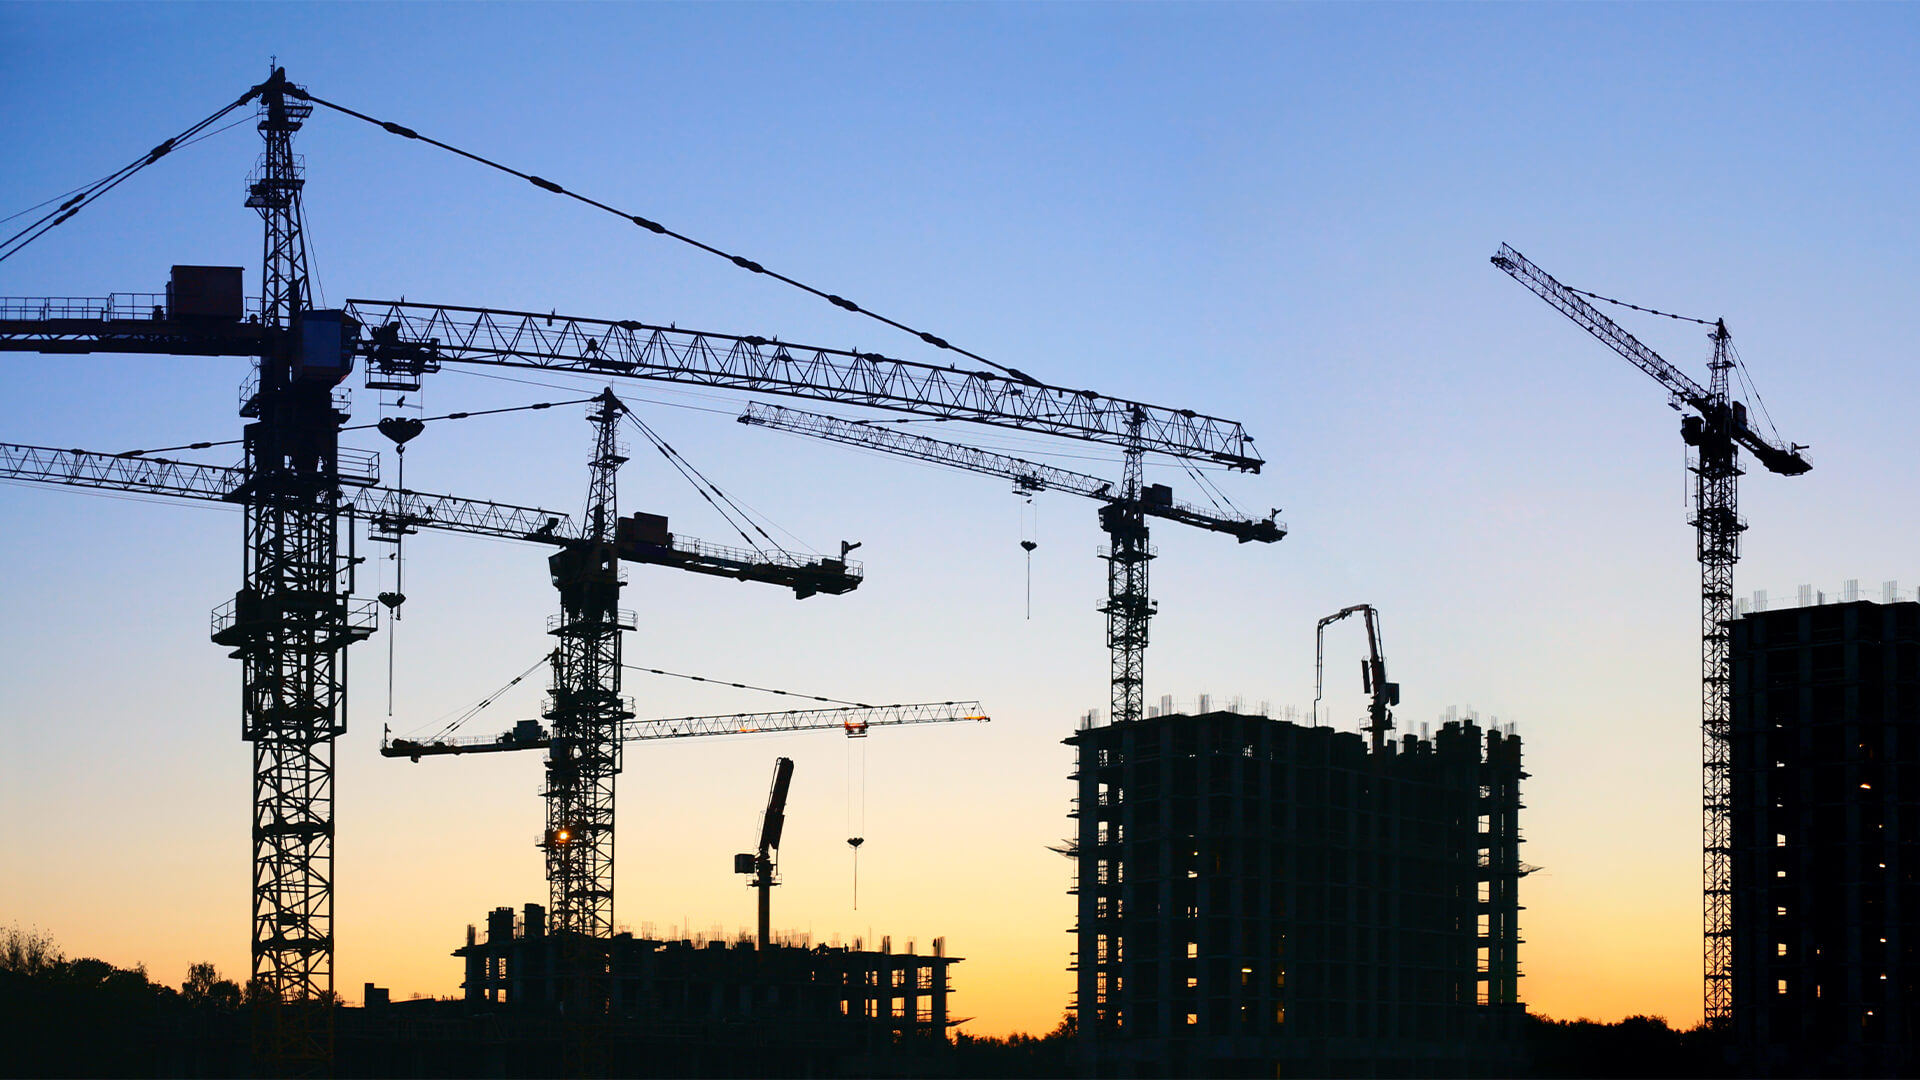 Silhouette of cranes on a construction site against a sunset